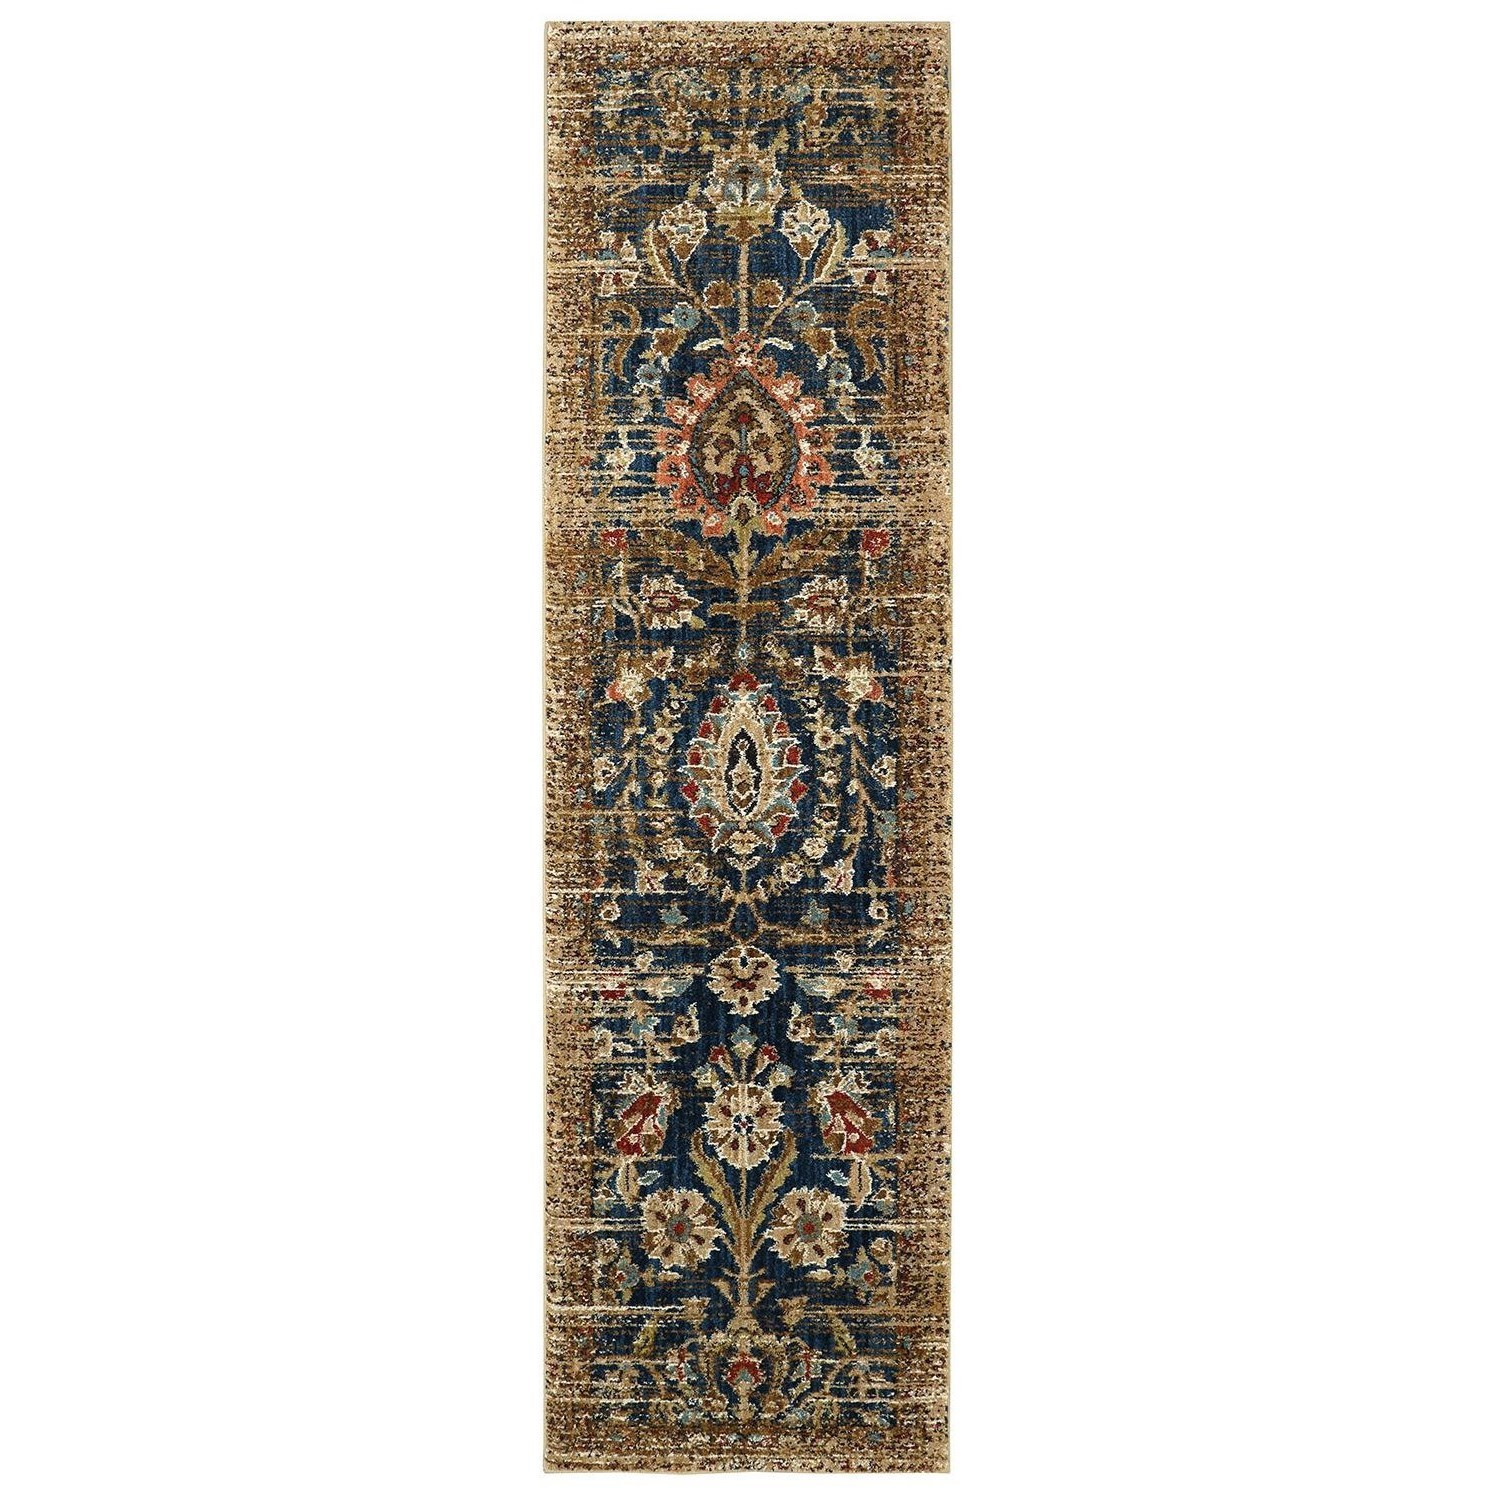 Rug Runner Gold: Spice Market 2'1x7'10 Charax Gold Rug Runner